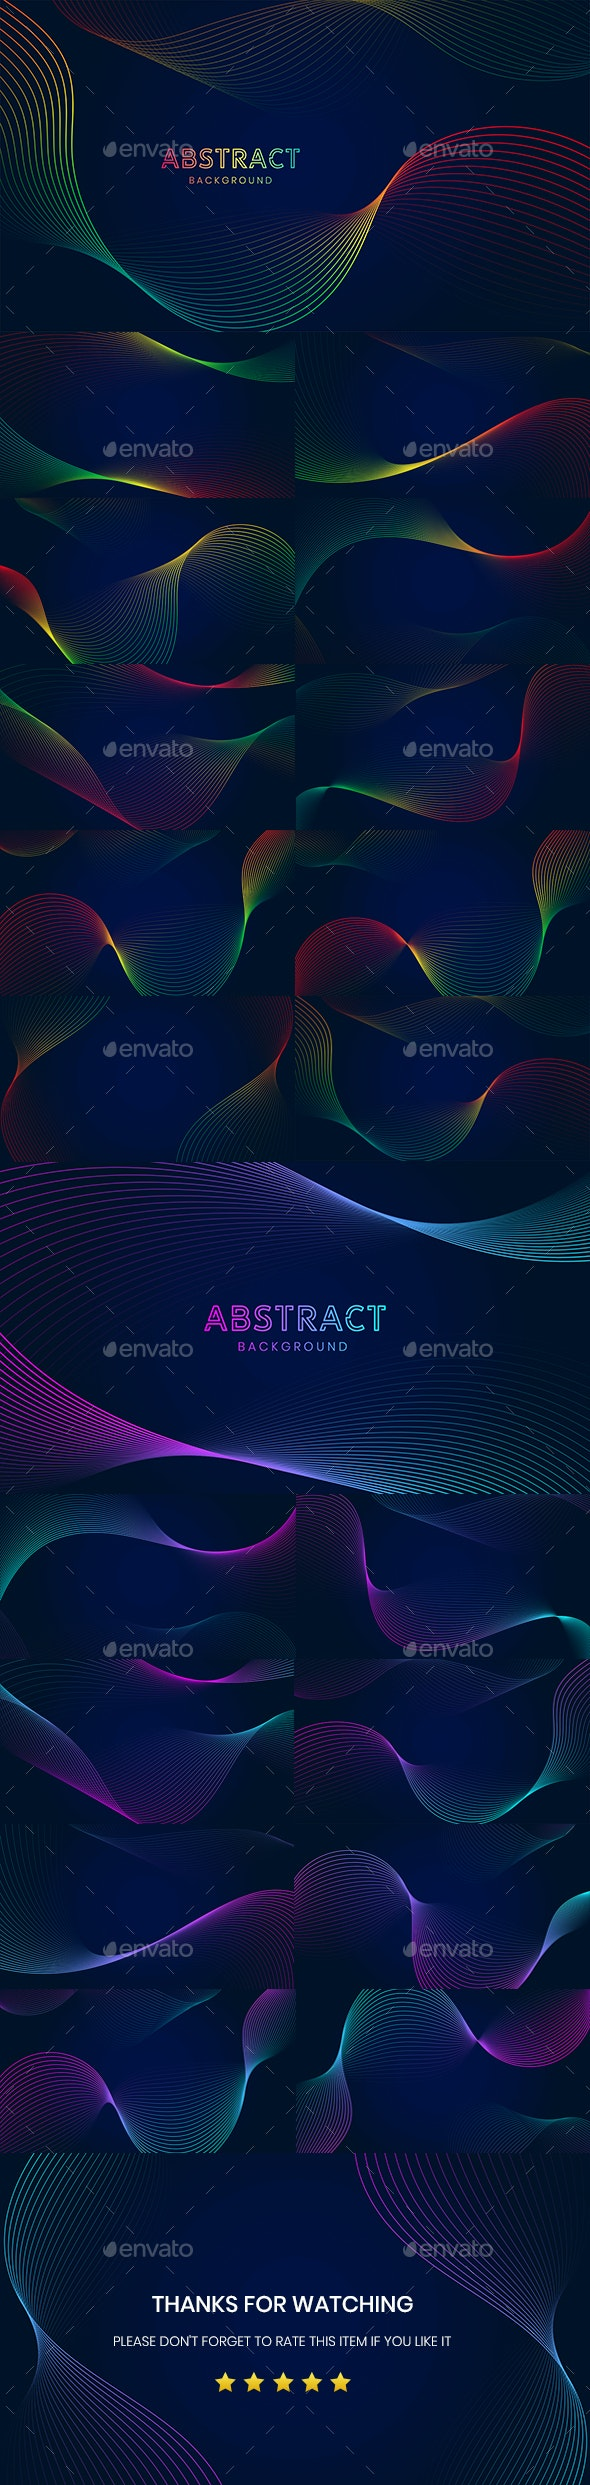 Abstract Background With Wavy Lines - Backgrounds Graphics